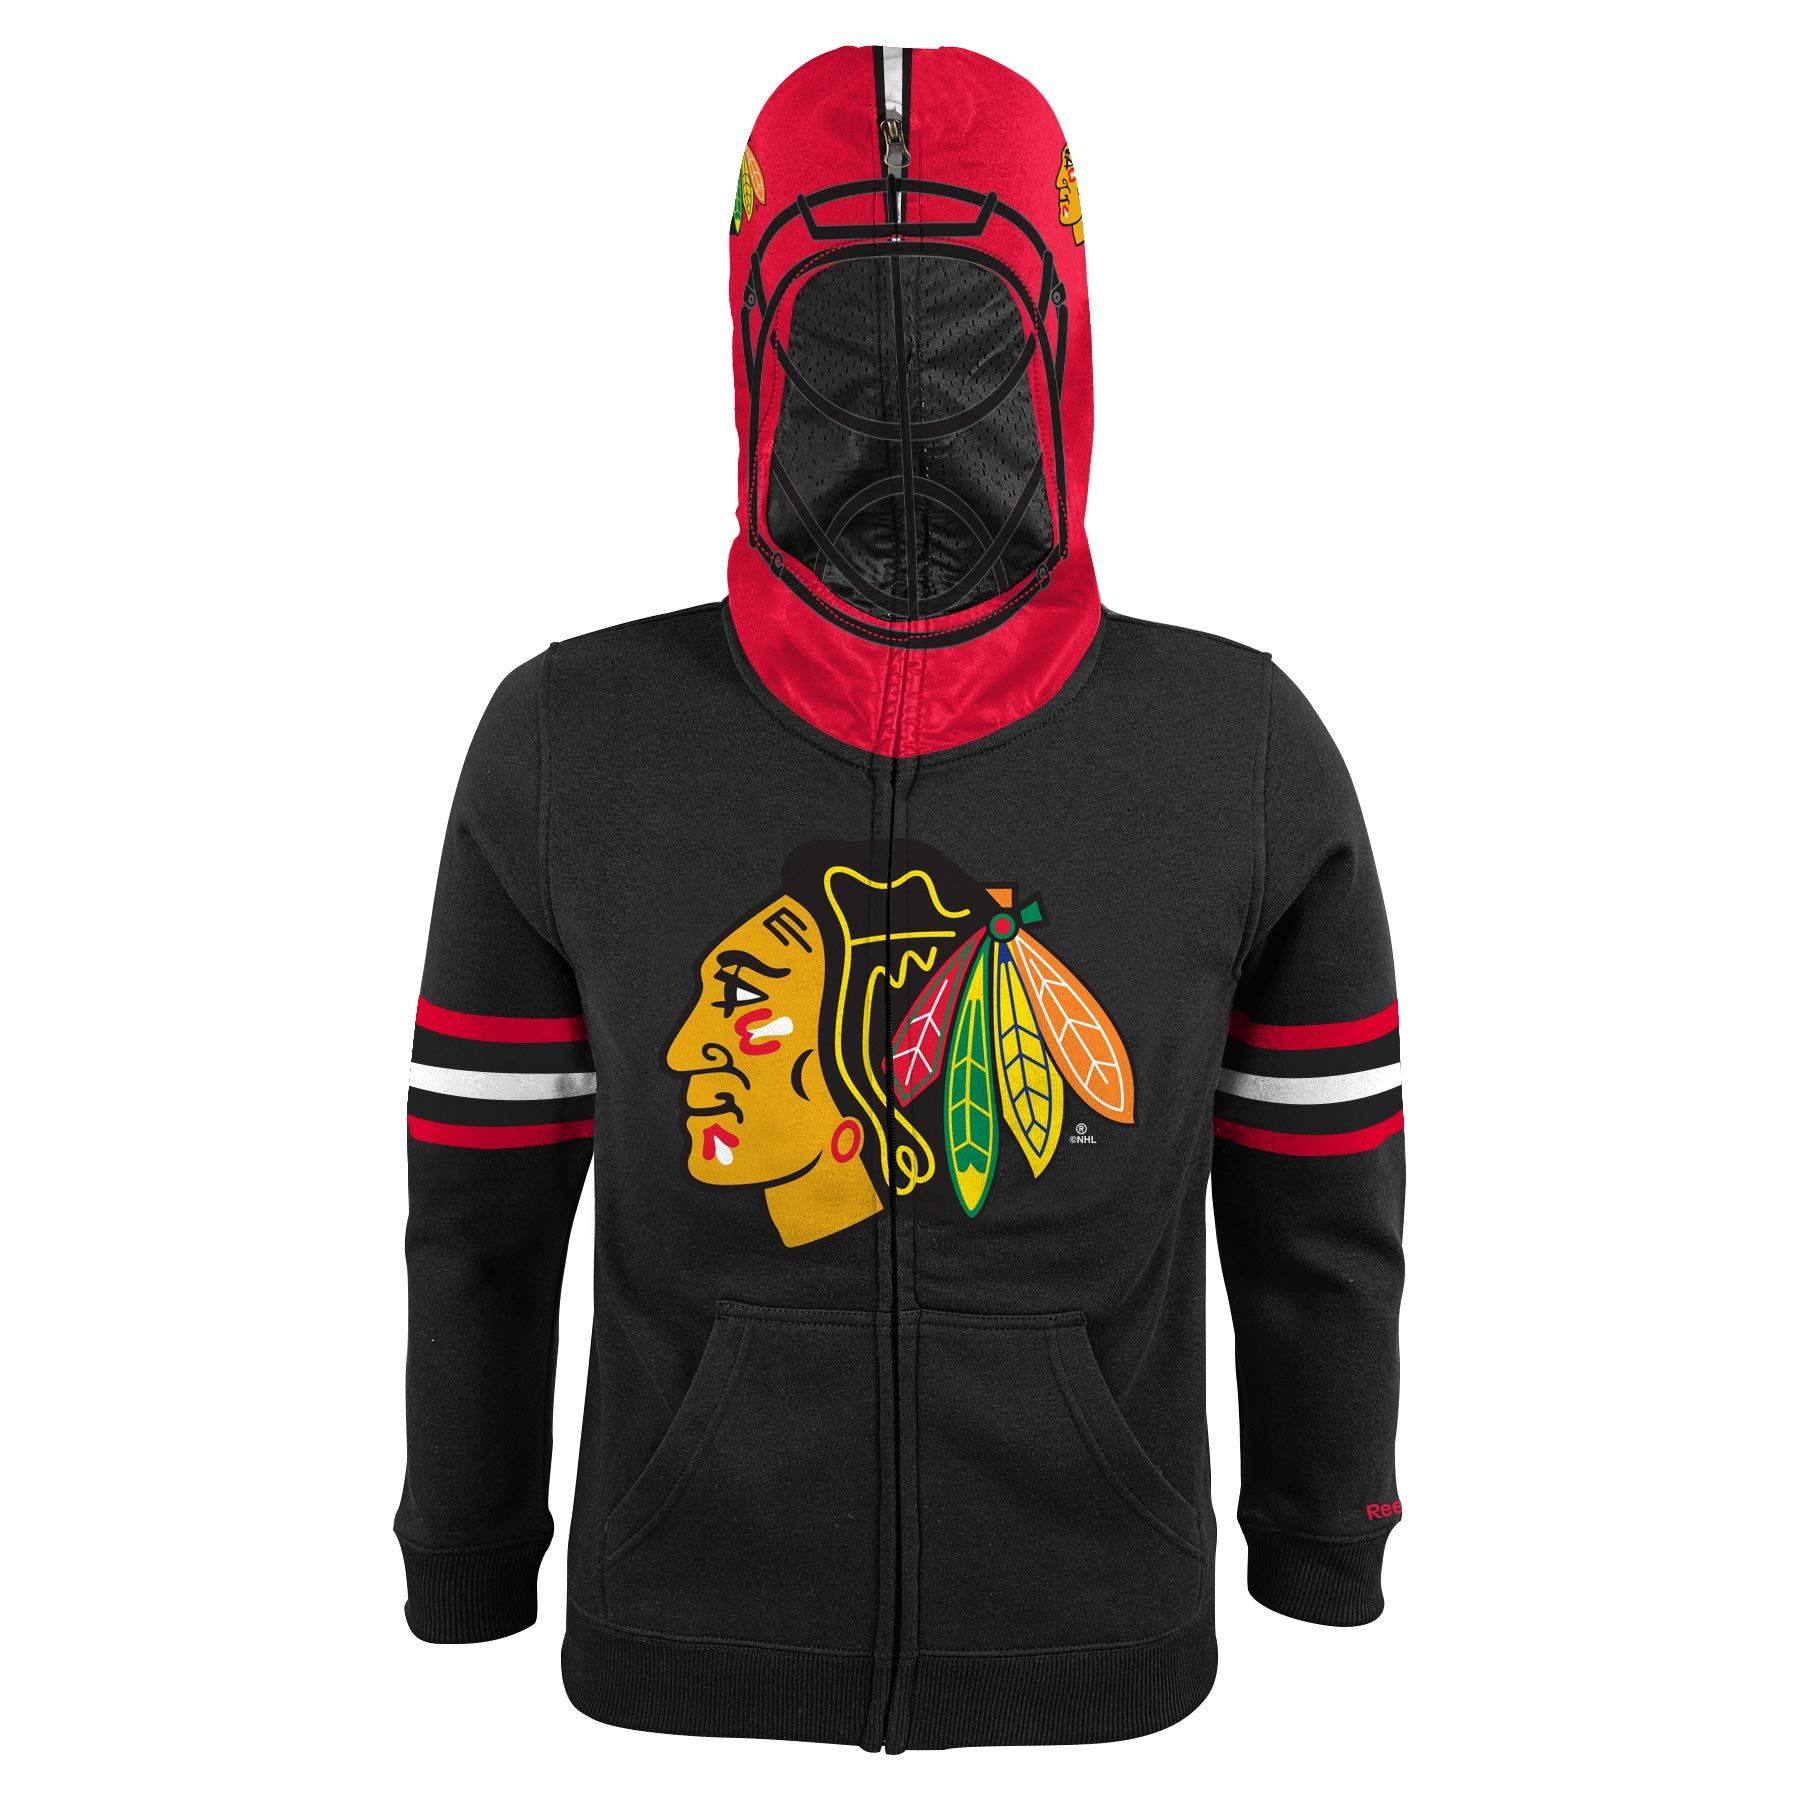 Chicago Blackhawks Youth Nhl Goalie Mask Full Zip Hoodie  6cda71b1d